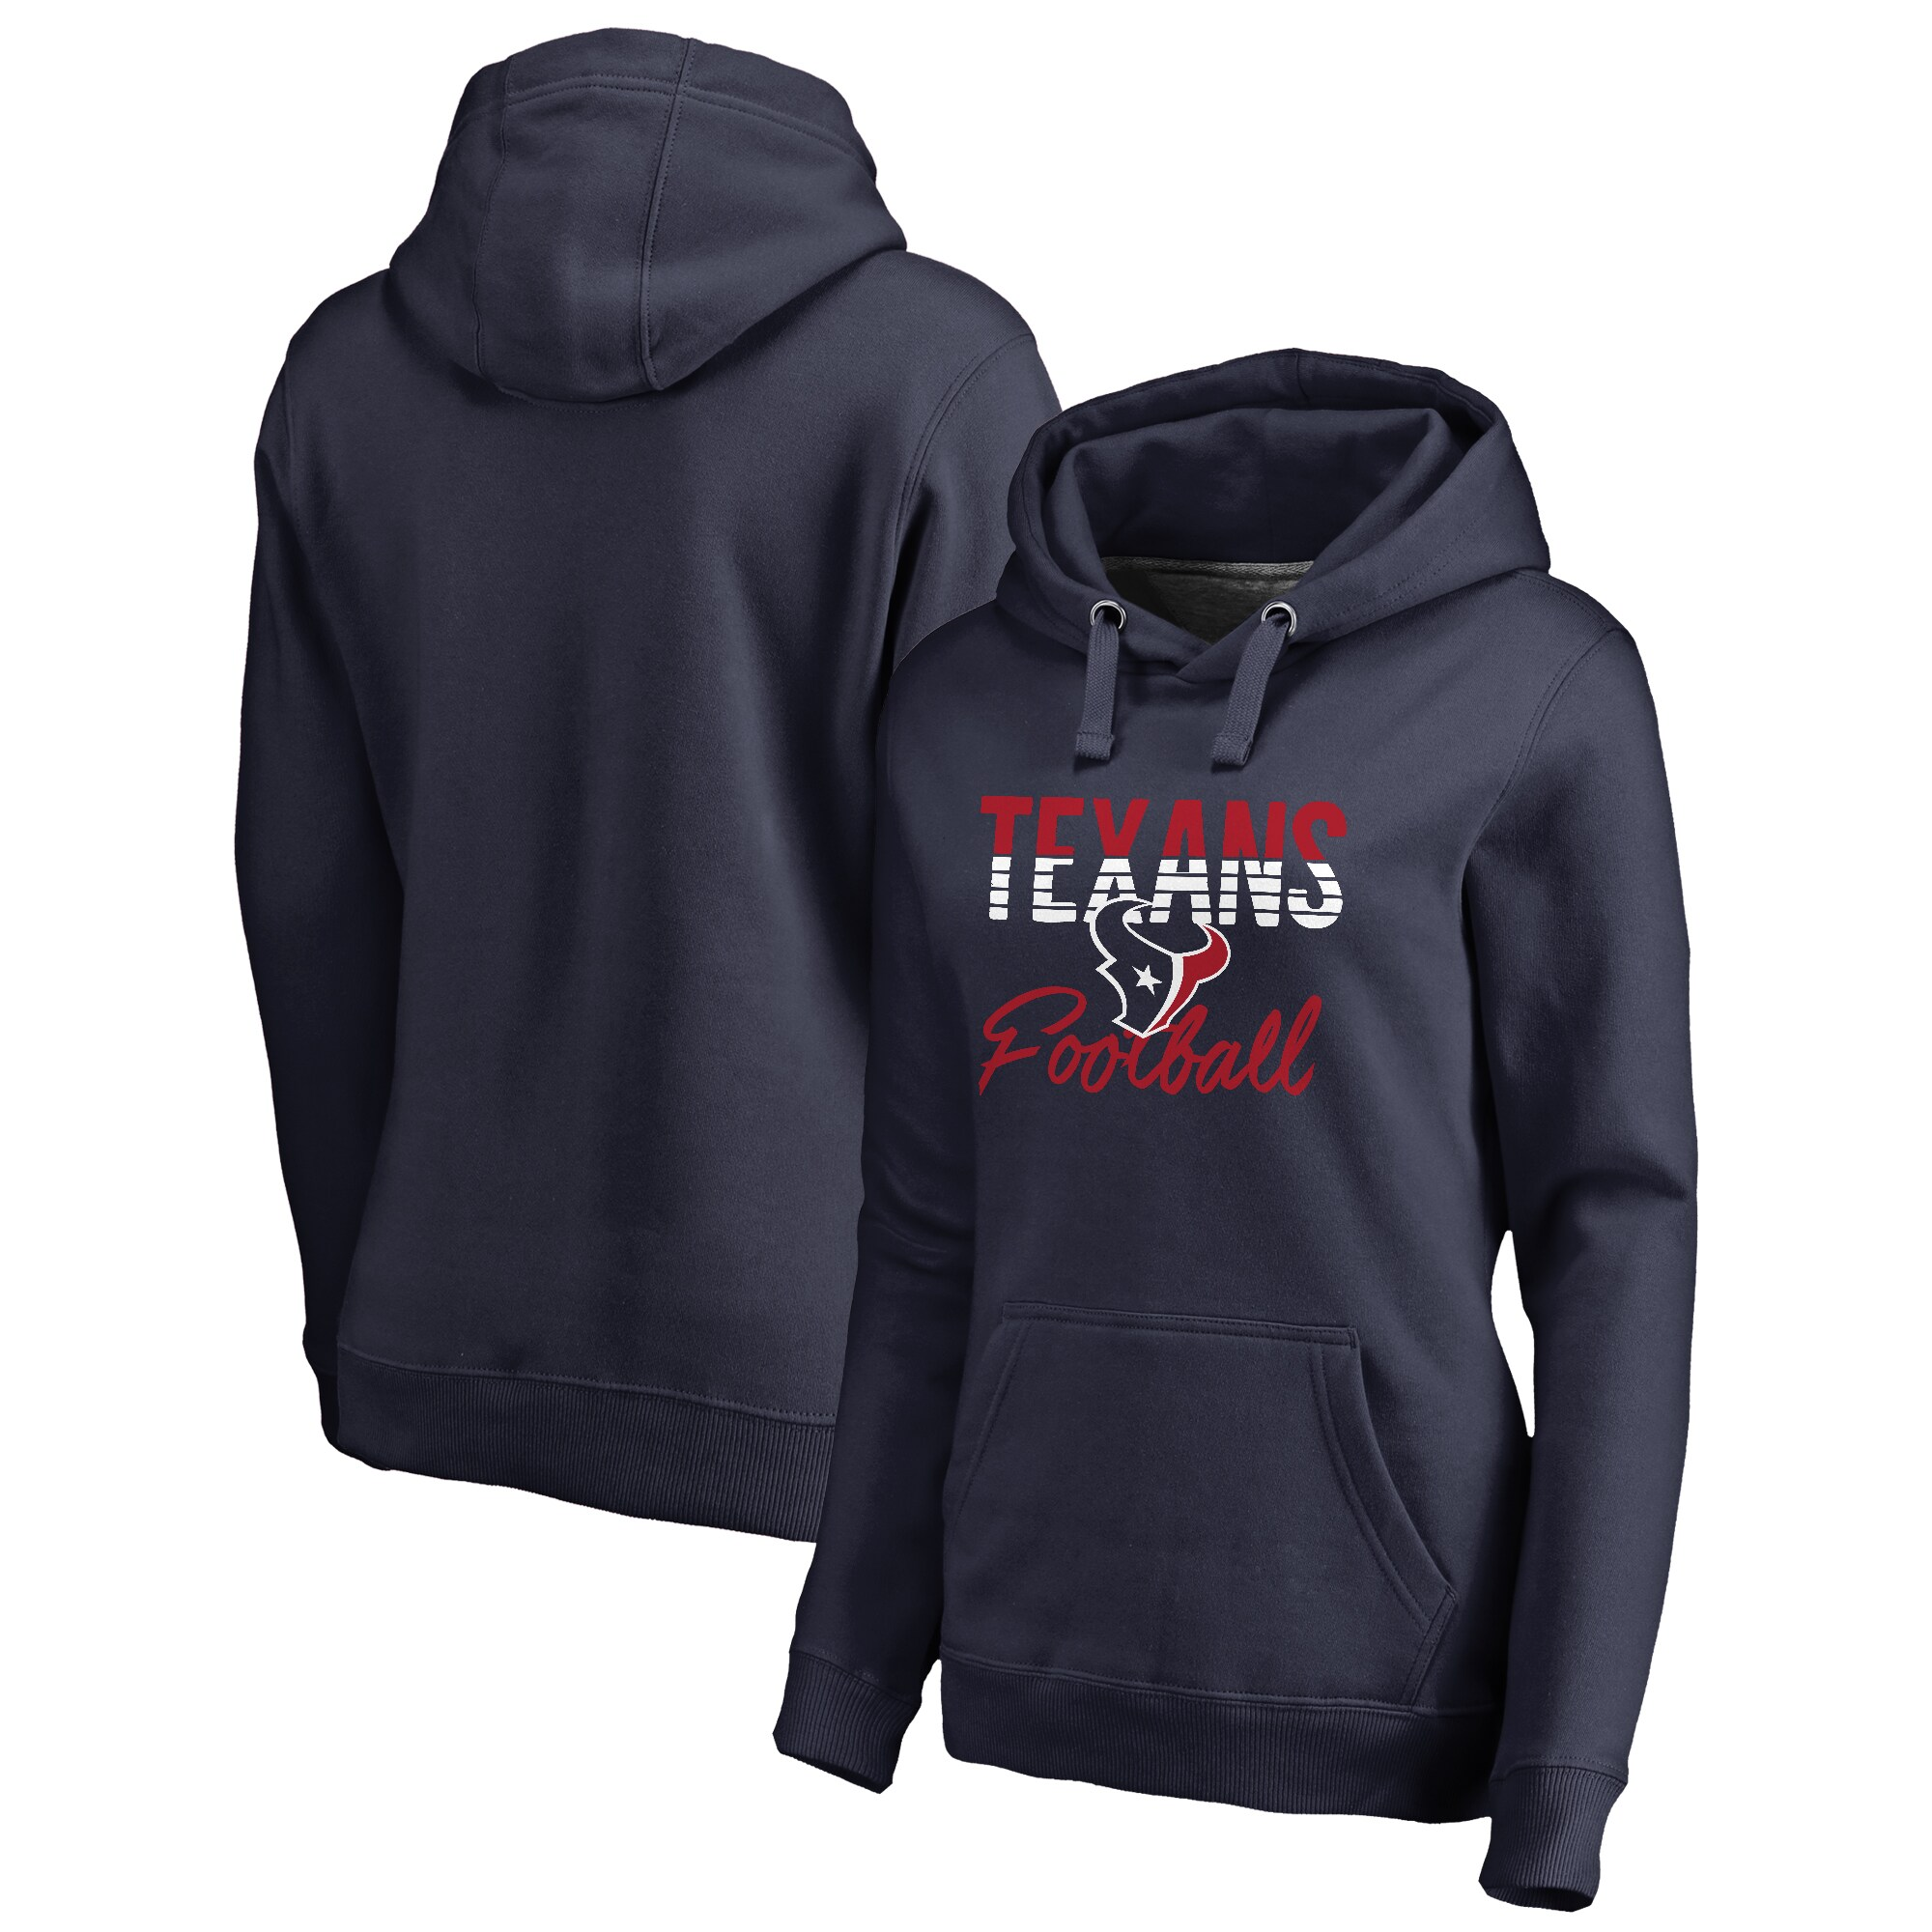 Houston Texans NFL Pro Line by Fanatics Branded Women's Free Line Pullover Hoodie - Navy